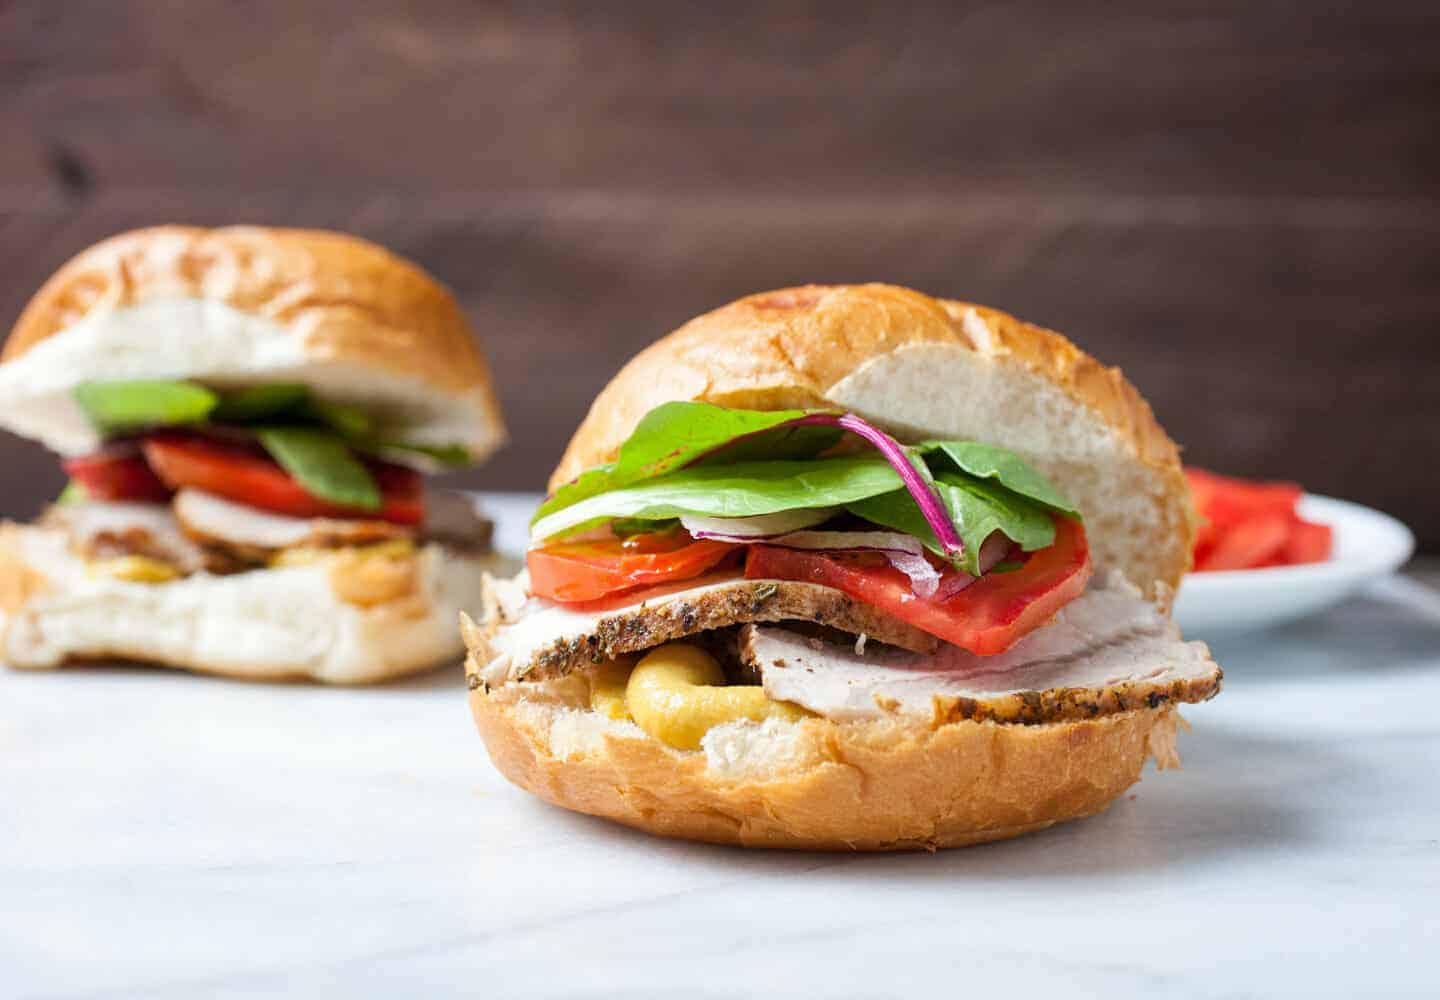 Balsamic Roasted Pork Sandwiches: Slow roasted pork glazed with a simple balsamic sauce, sliced thin, and served with honey mustard sauce and fresh veggies. Such a great sandwich! | macheesmo.com